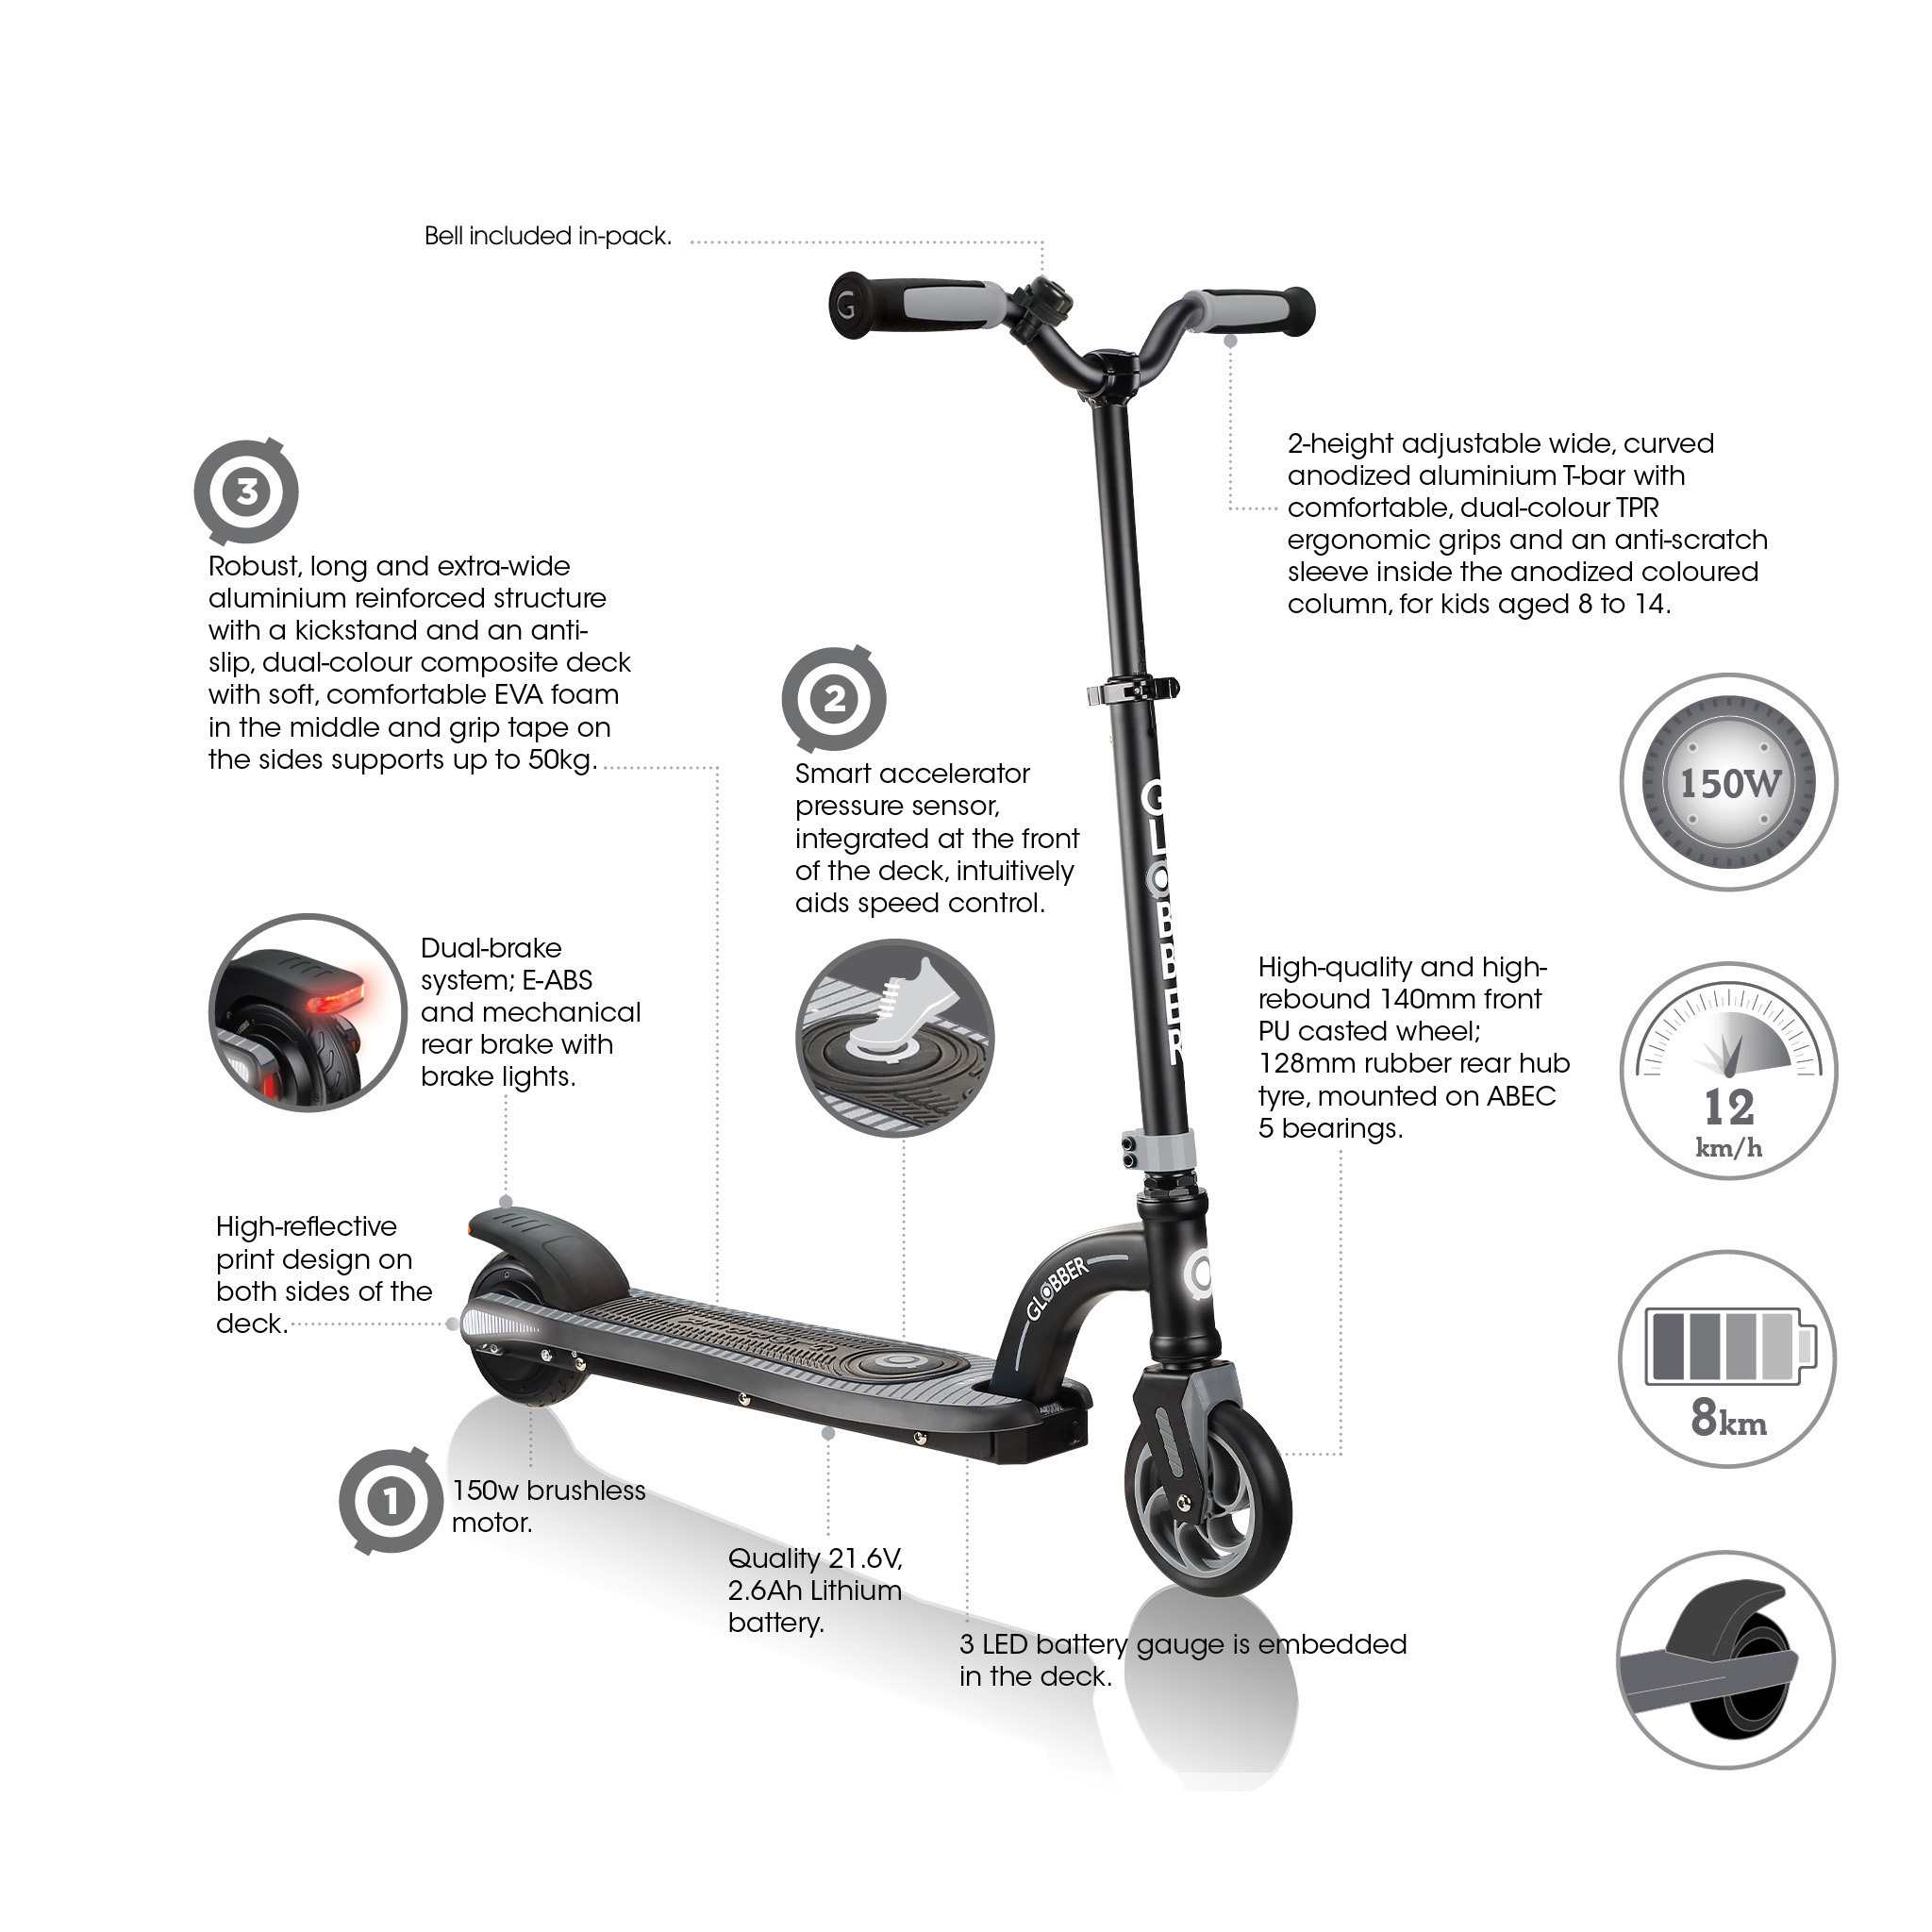 ONE K E-MOTION 10 best electric scooter for kids key features